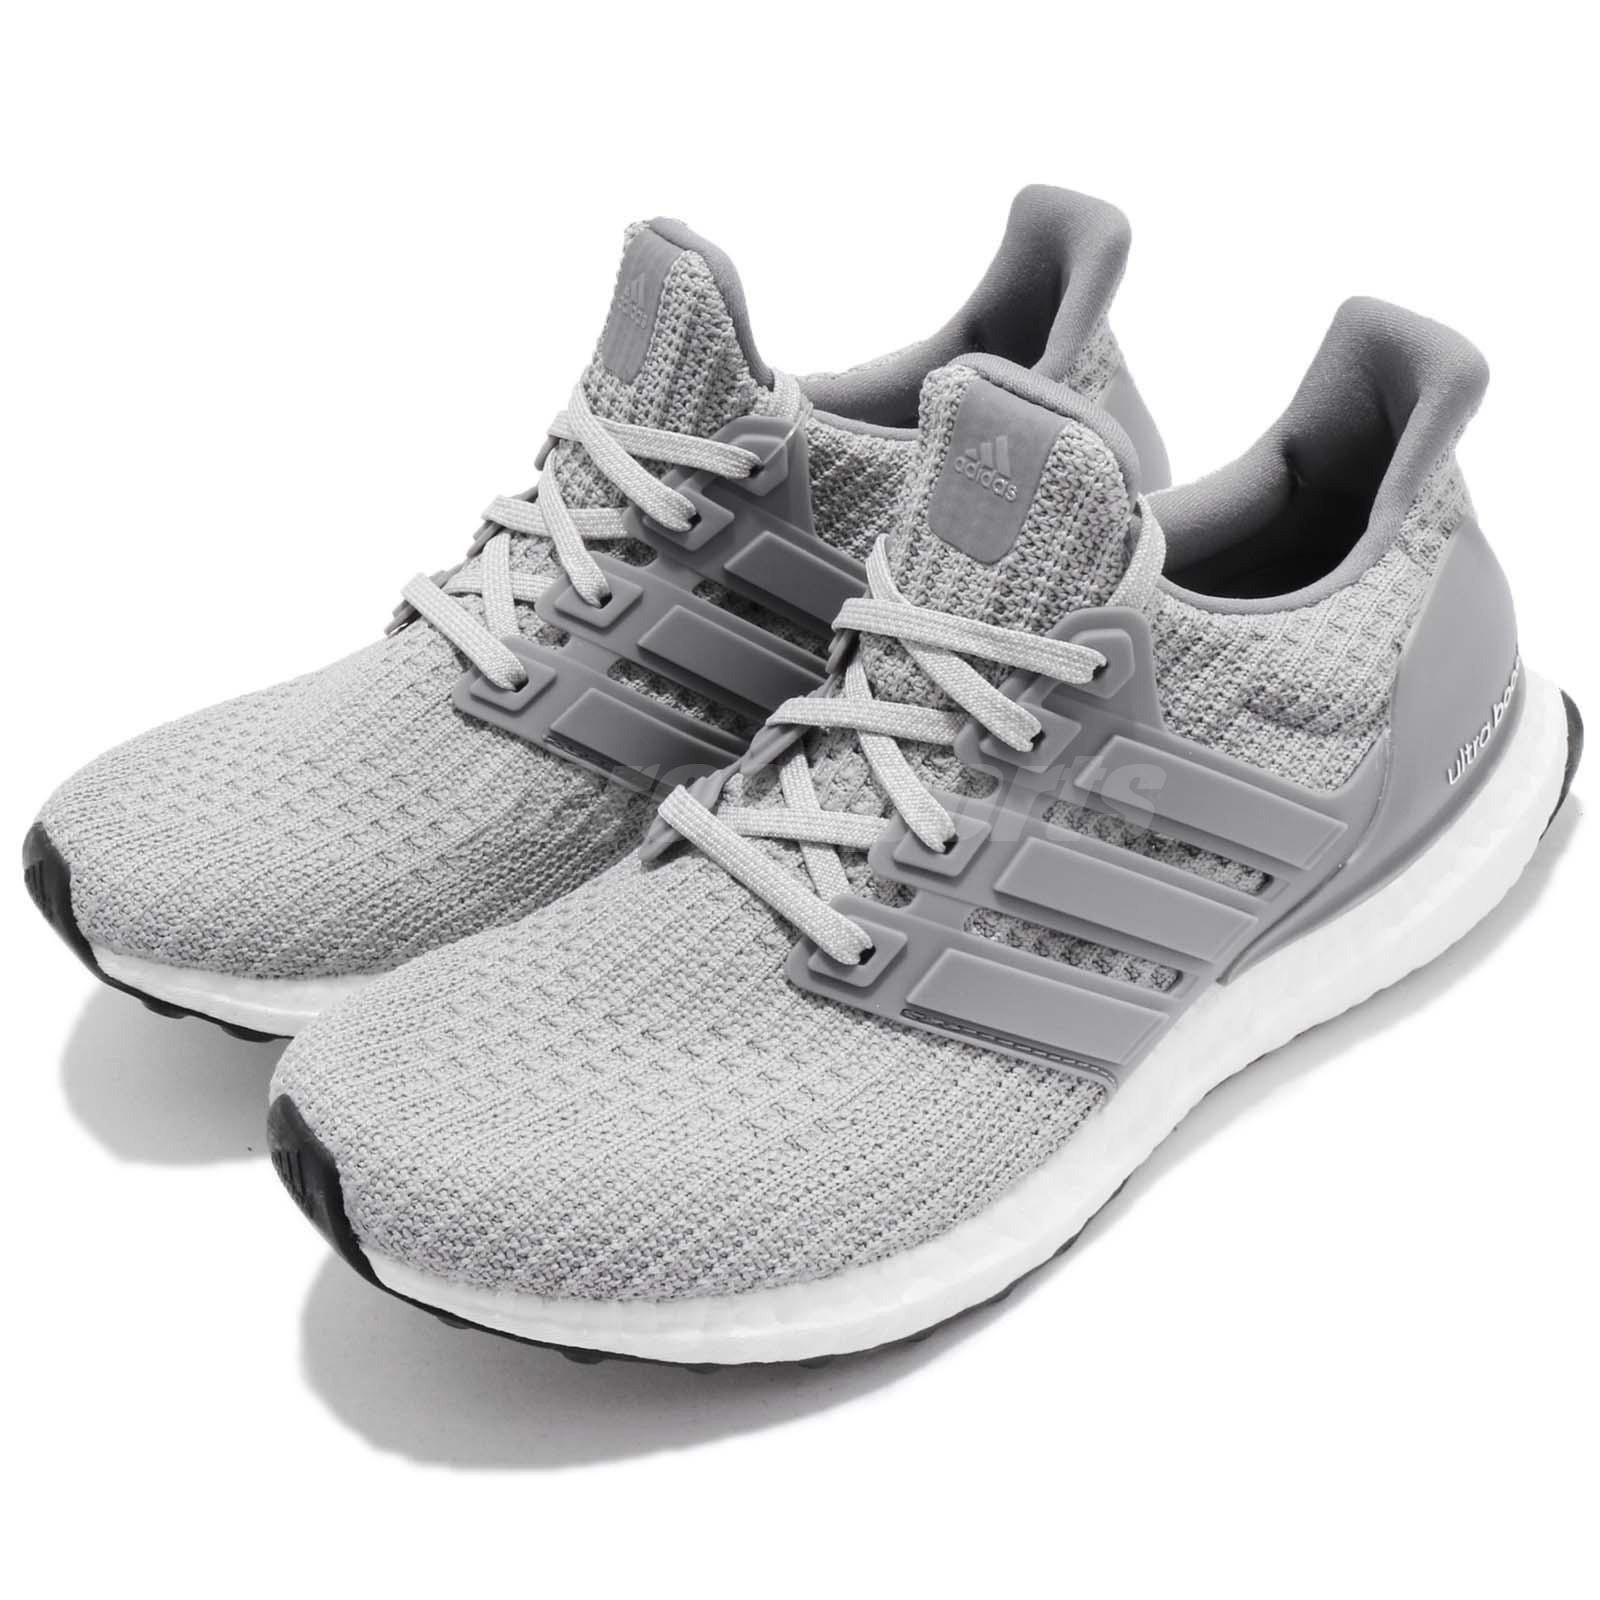 b32a5ffc1 Details about adidas UltraBOOST W 4.0 Grey White Women Running Casual Shoes  Sneakers BB6150